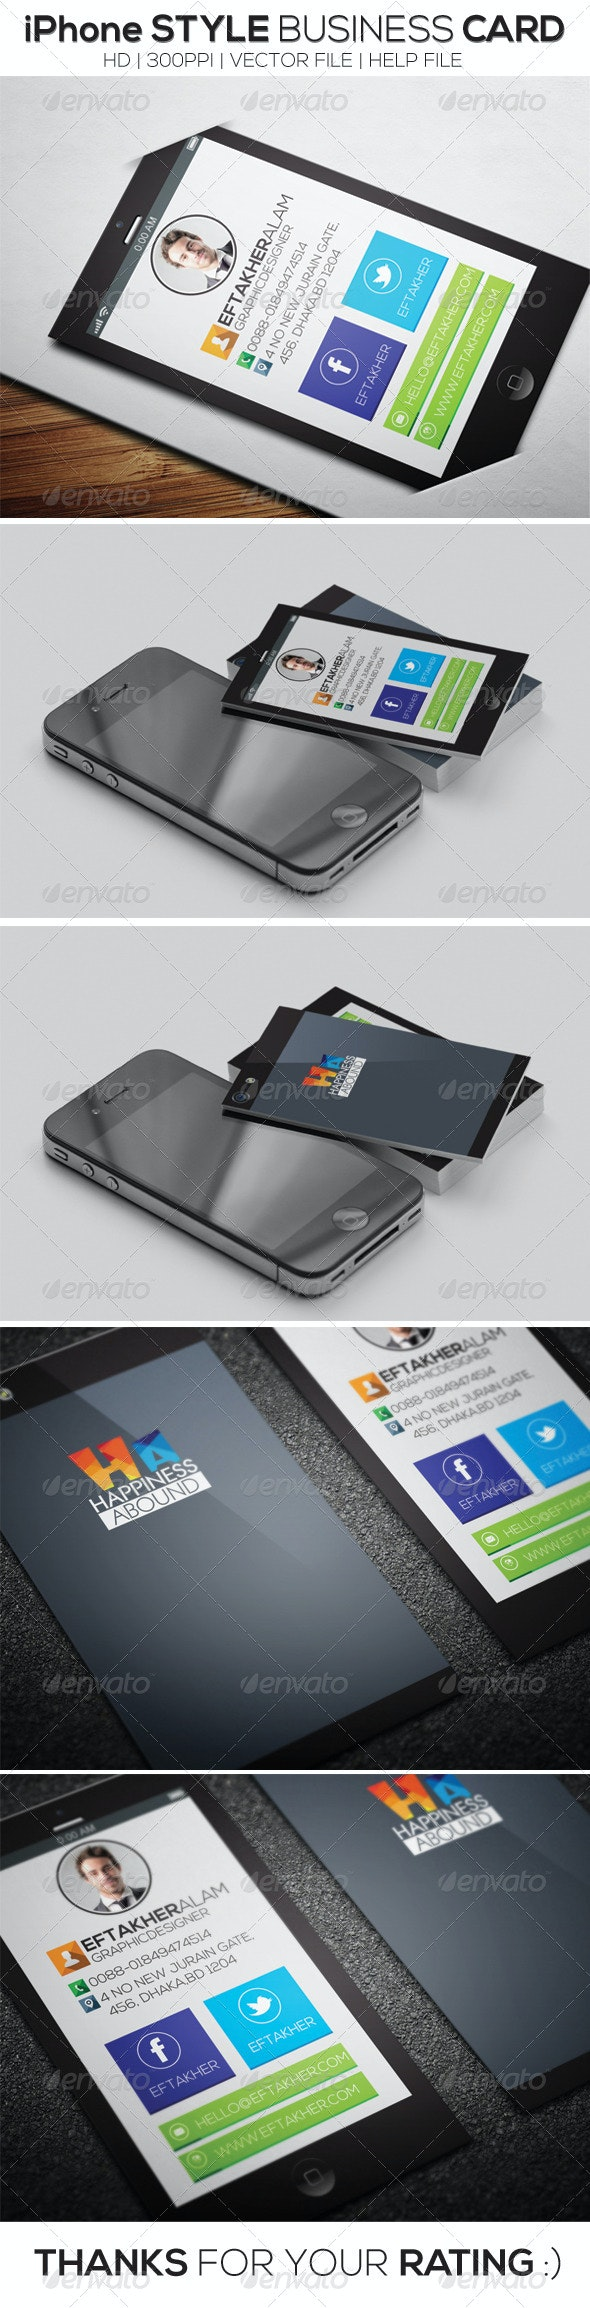 iPhone Style Business Card - Real Objects Business Cards